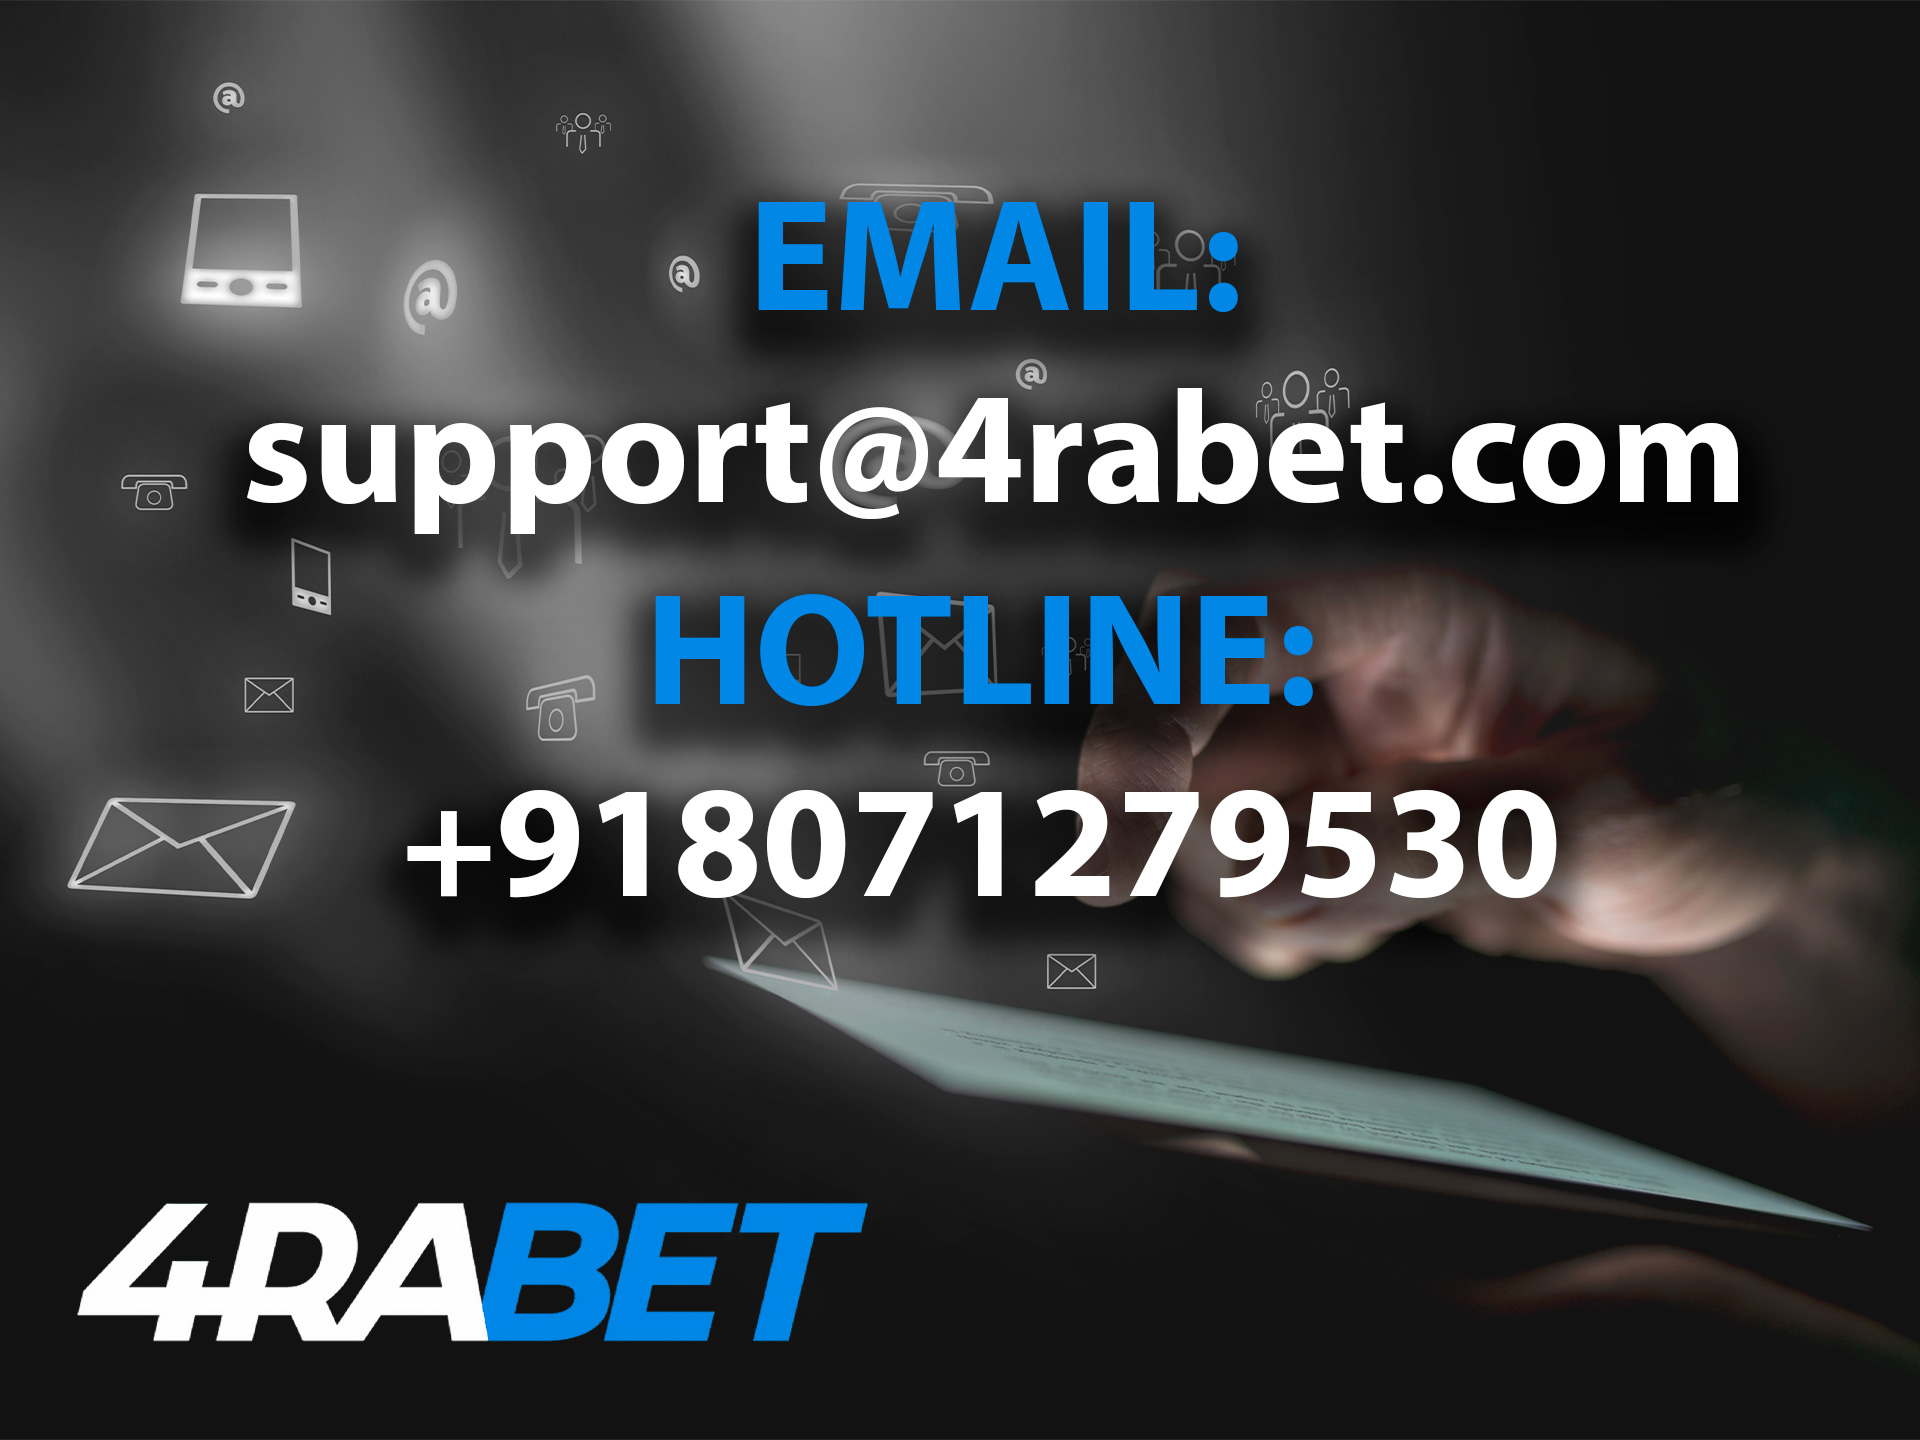 You can contact 4rabet team any way. that is more convenient for you.